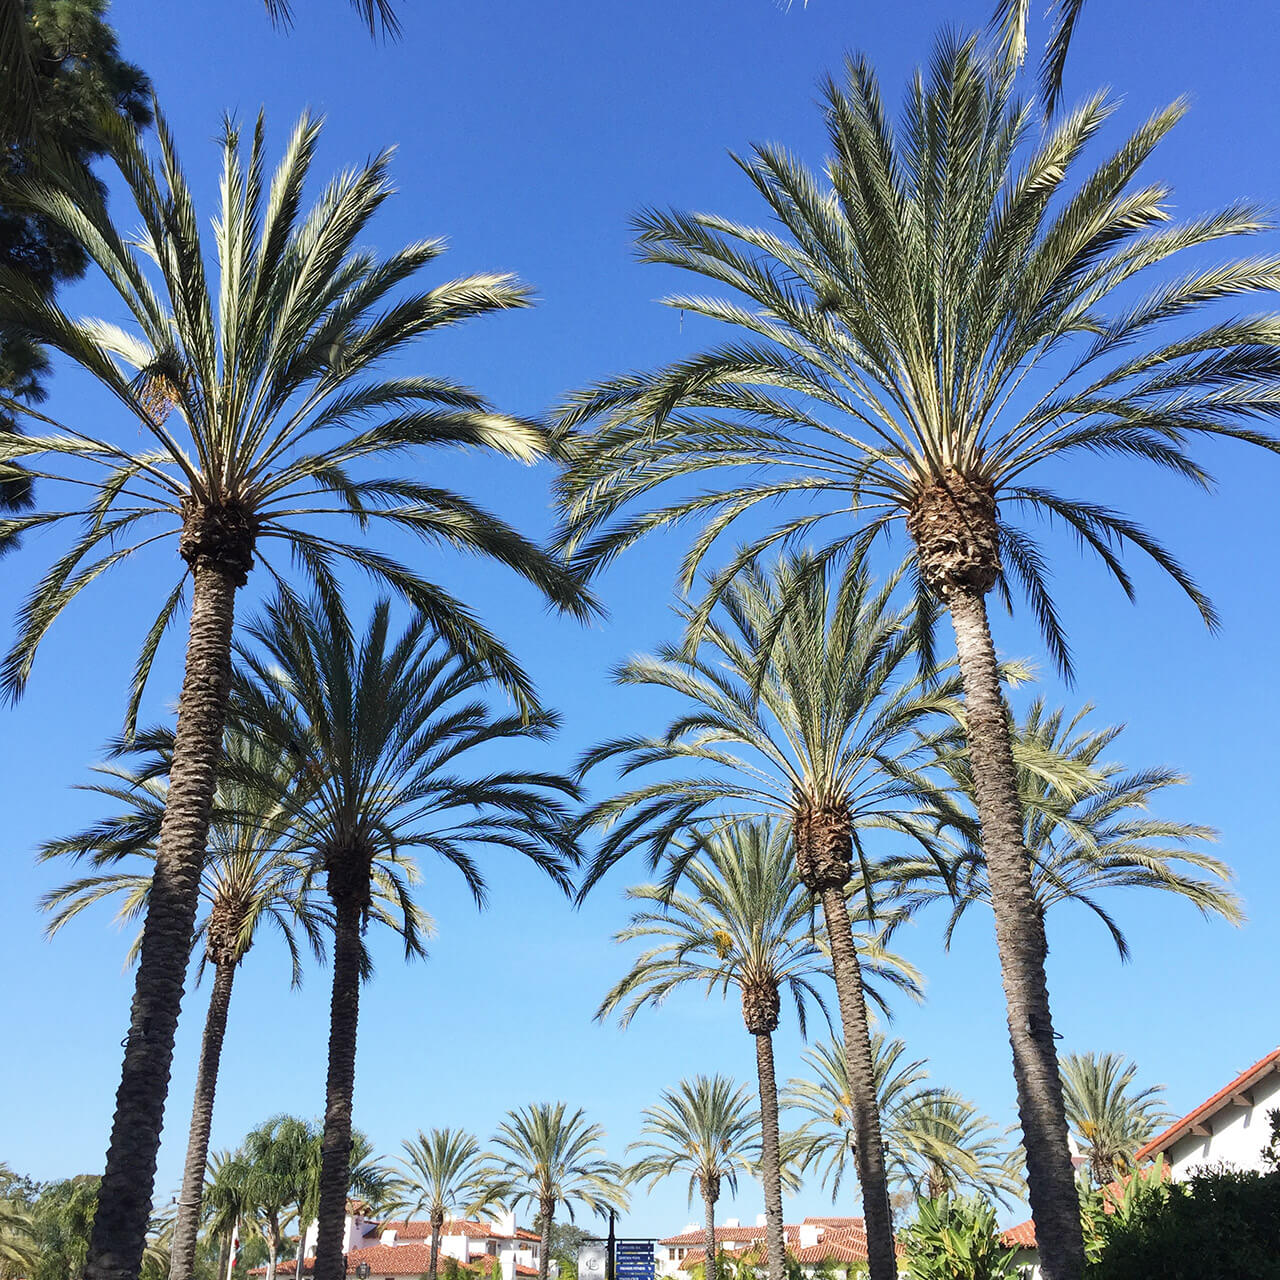 palm trees at omni la costa